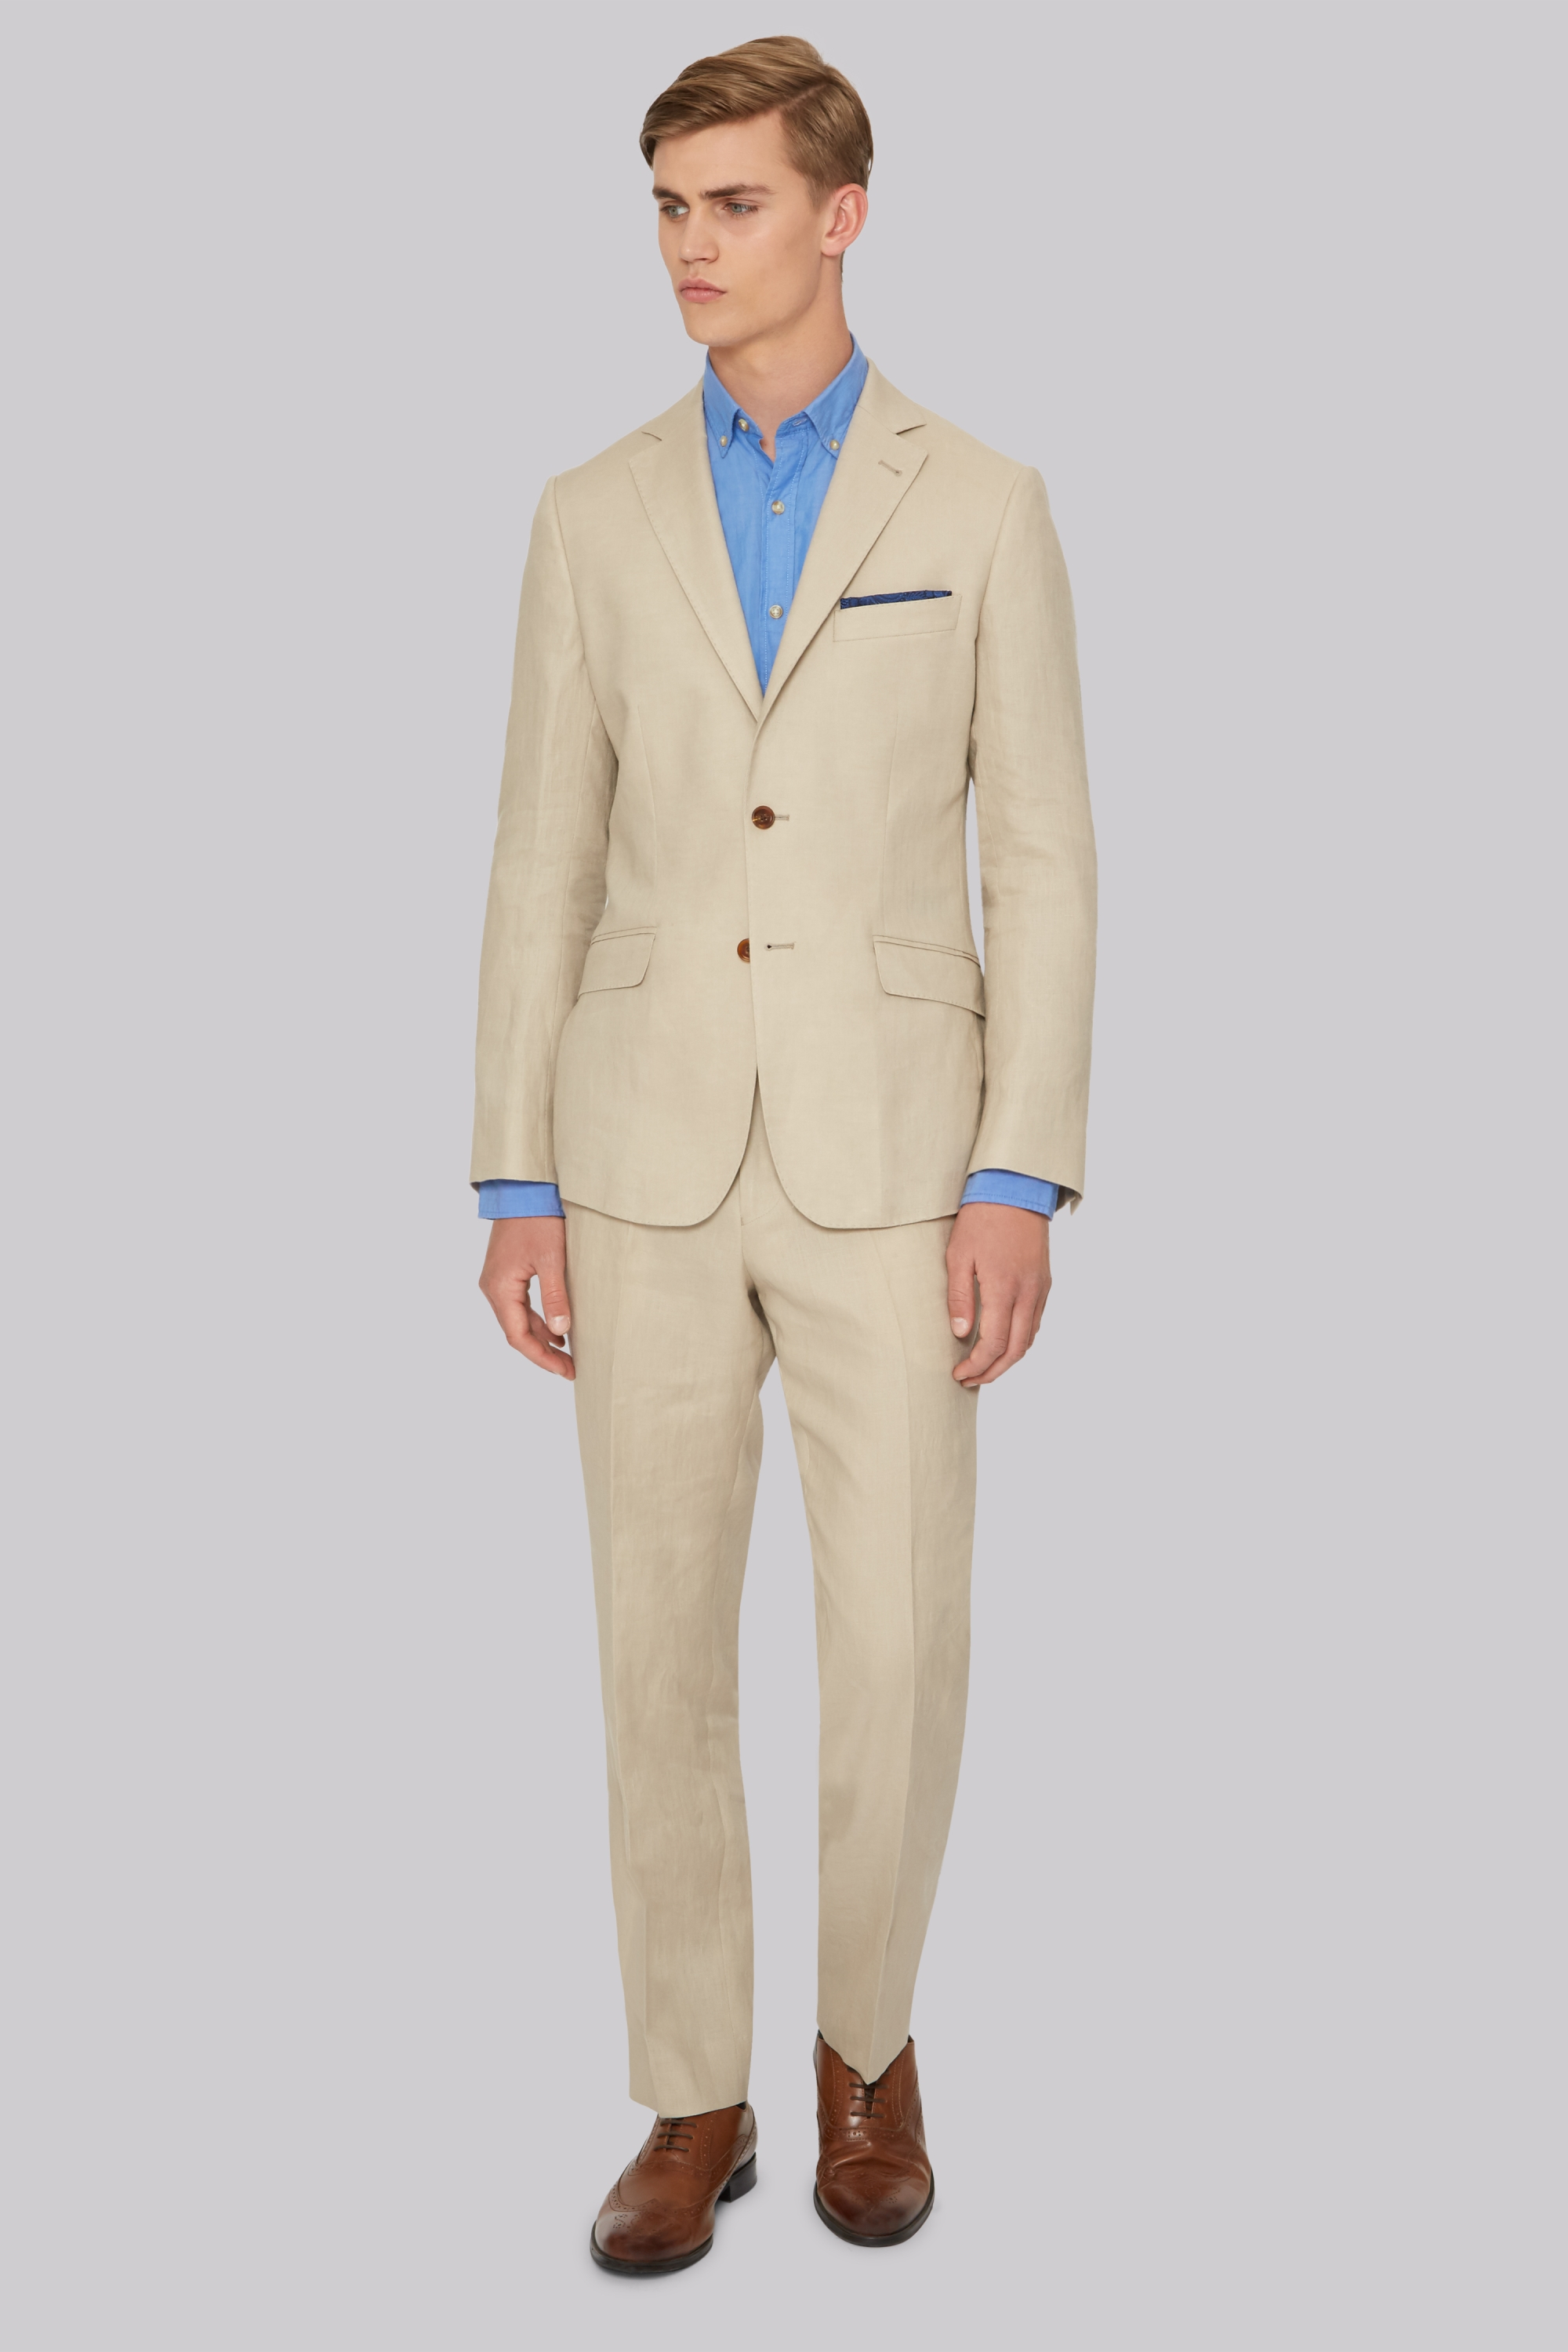 Sale Suits for Men | Discount Suits | Moss Bros